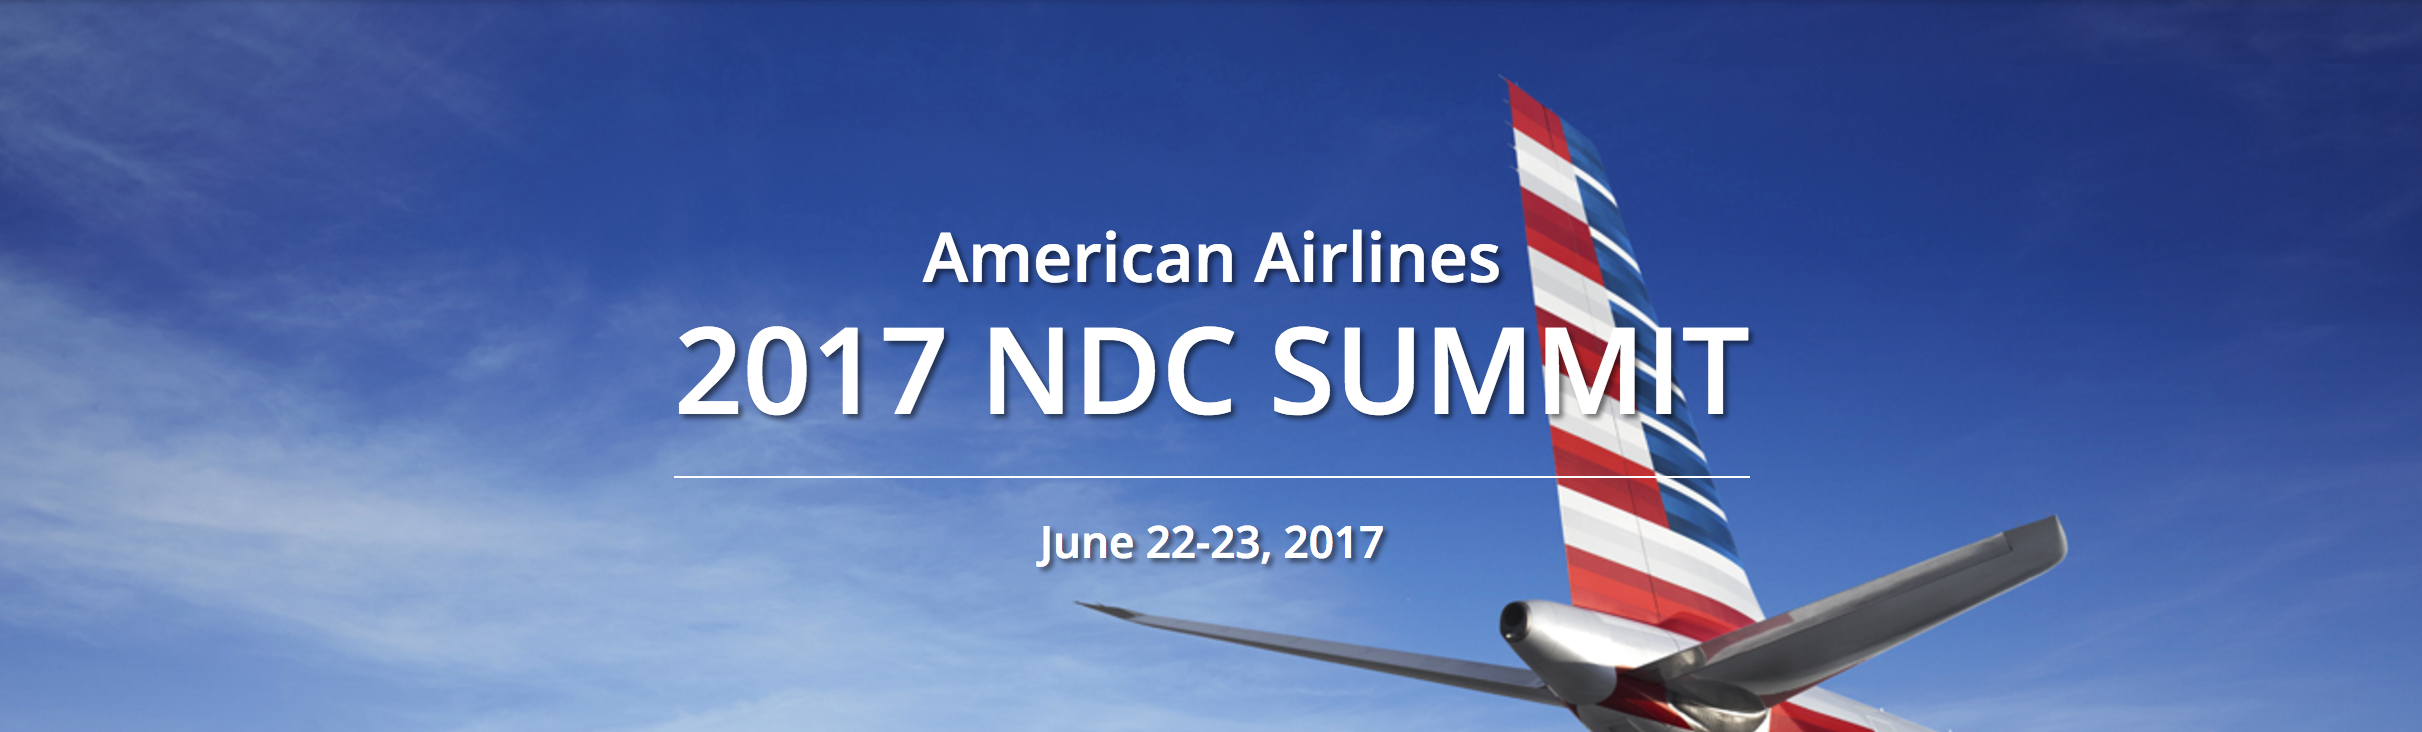 Presenting at the 2017 American Airlines NDC Summit